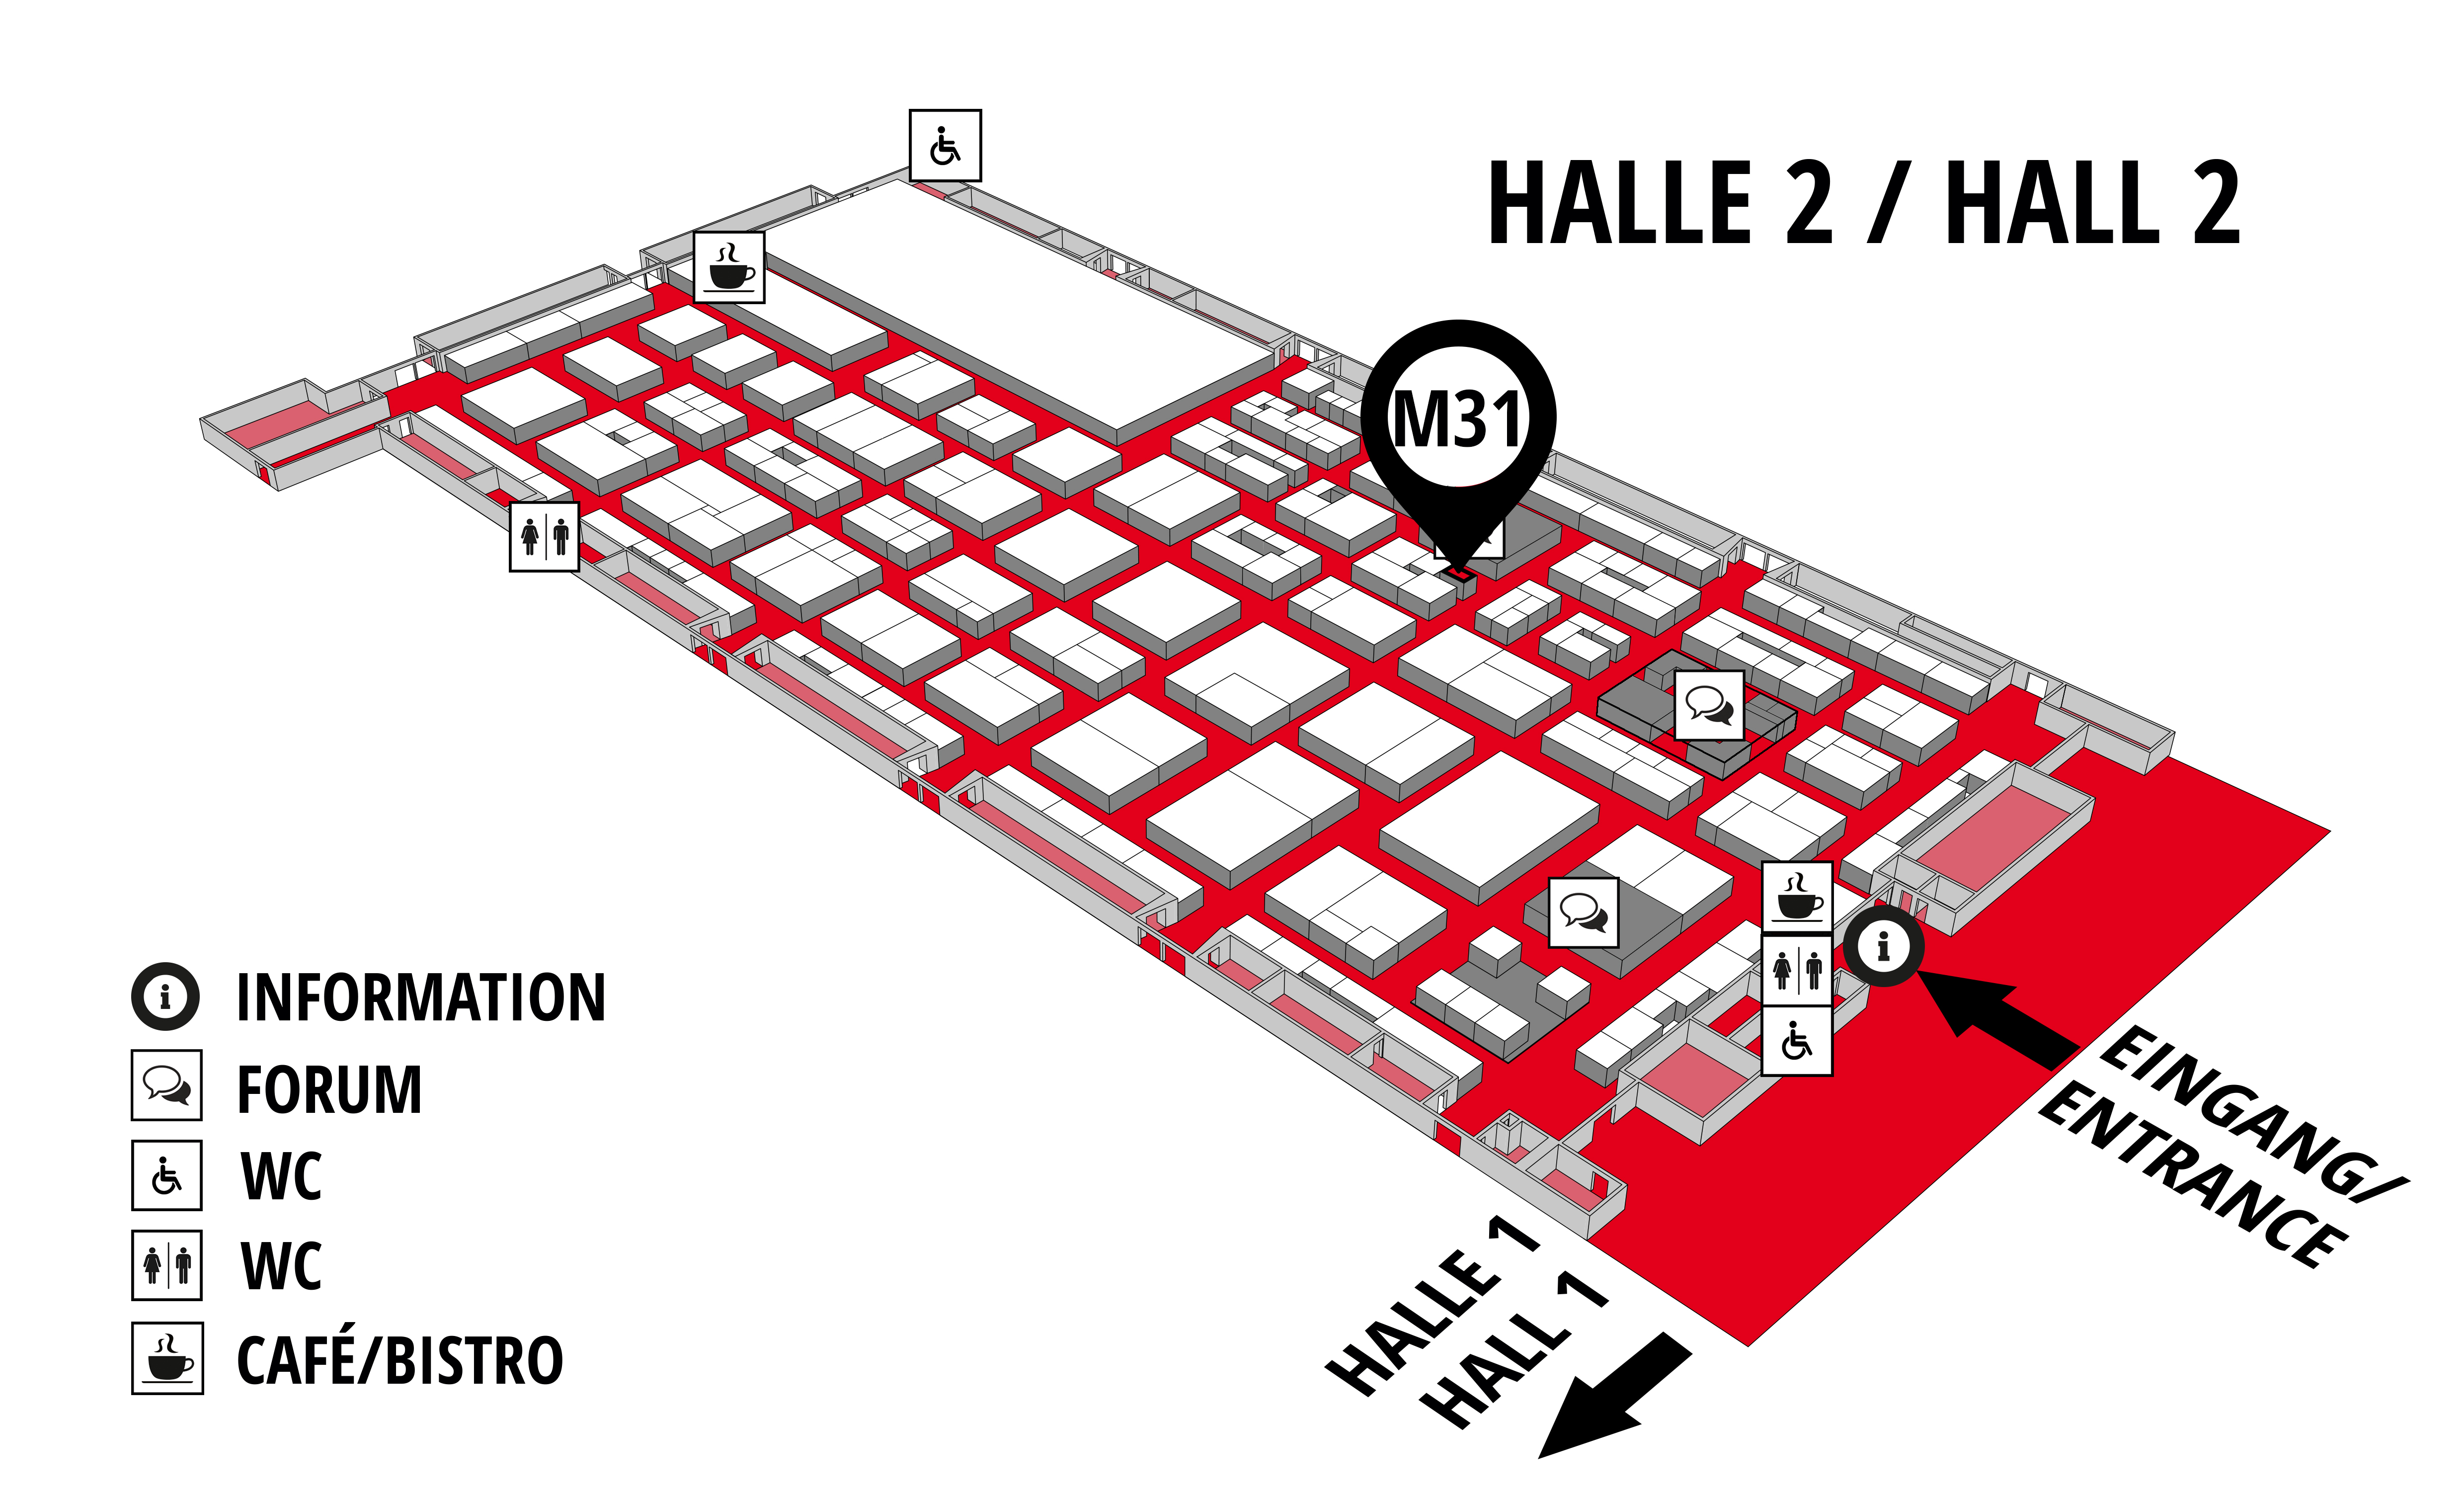 REHAB - Rehabilitation | Therapy | Care | Inclusion hall map (Hall 2): stand M31